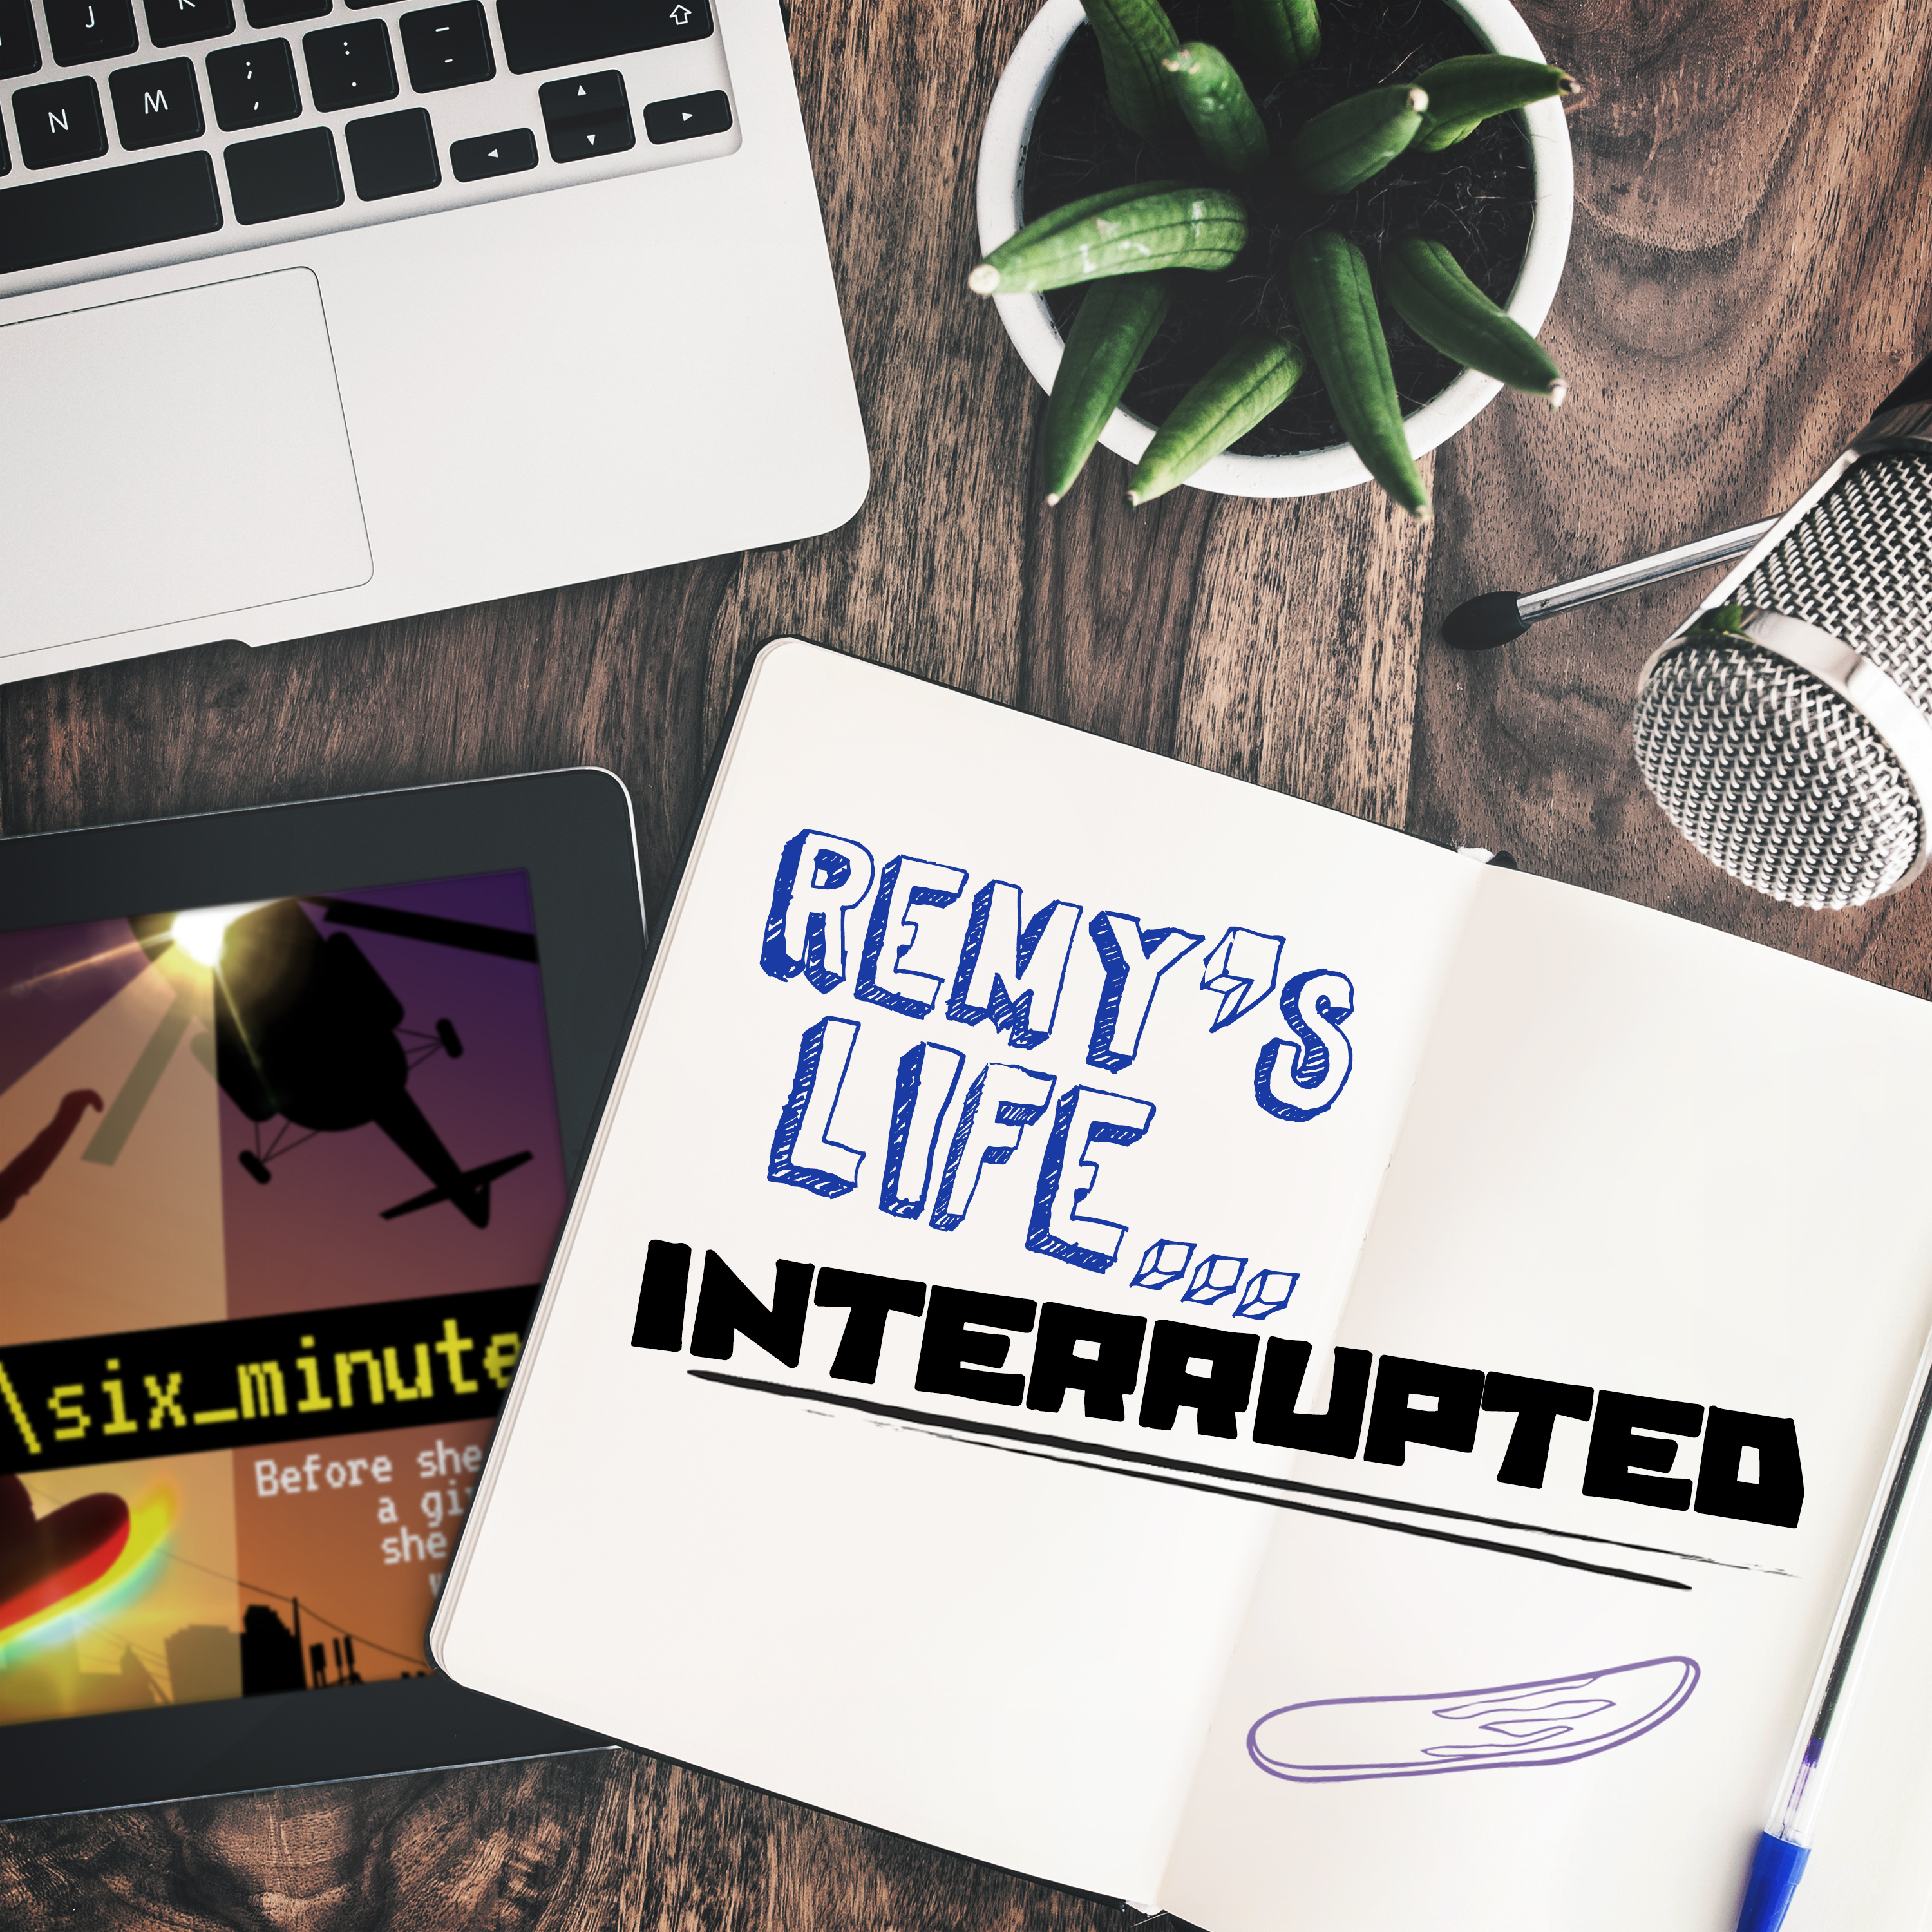 Remy's Life Interrupted: EP76